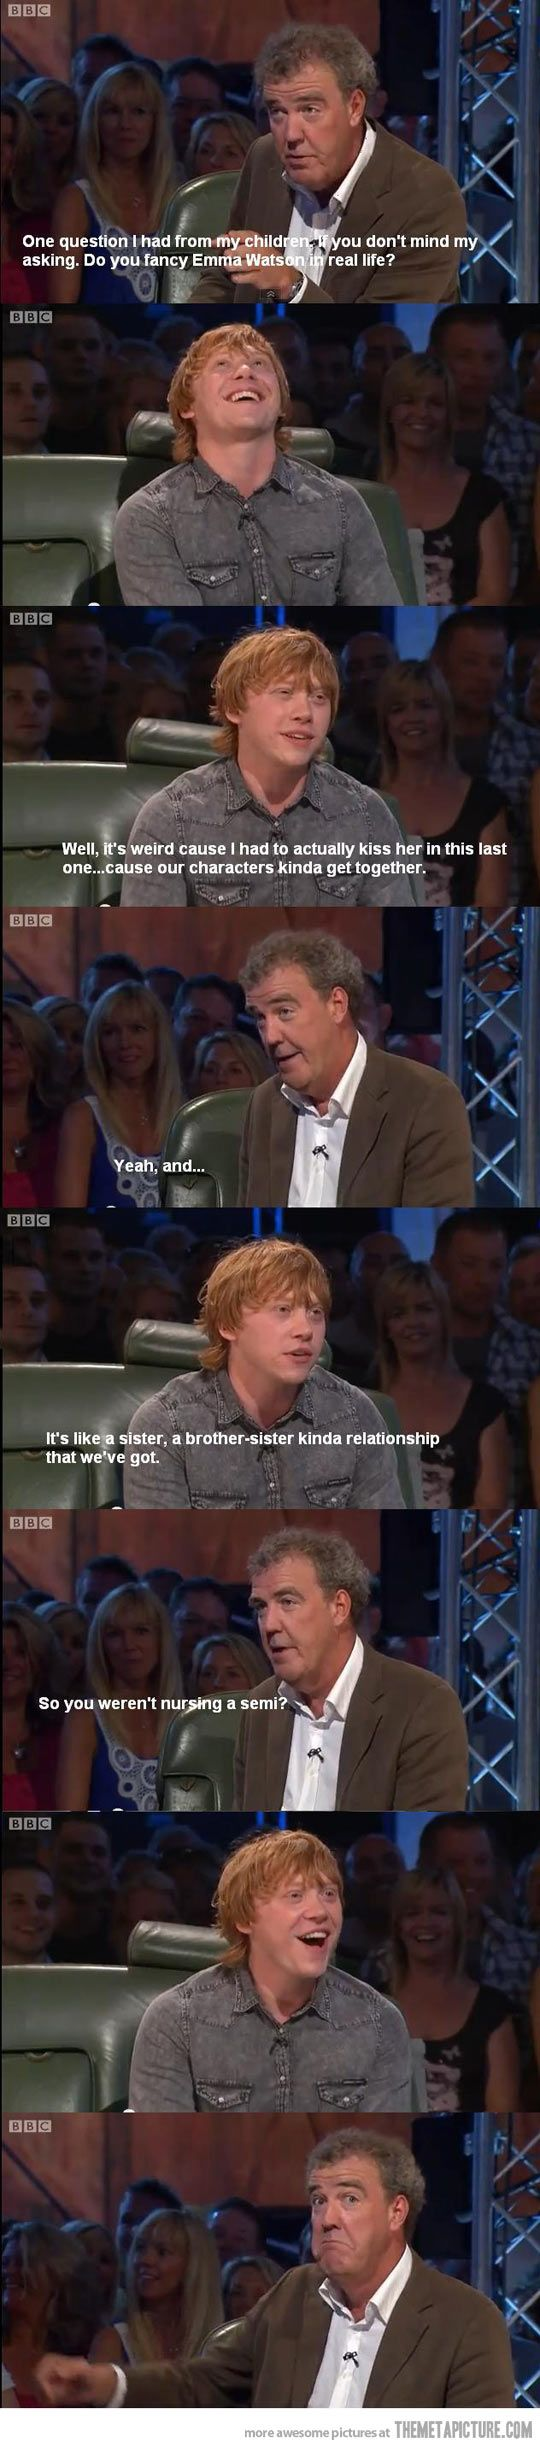 What would jeremy clarkson do moment.